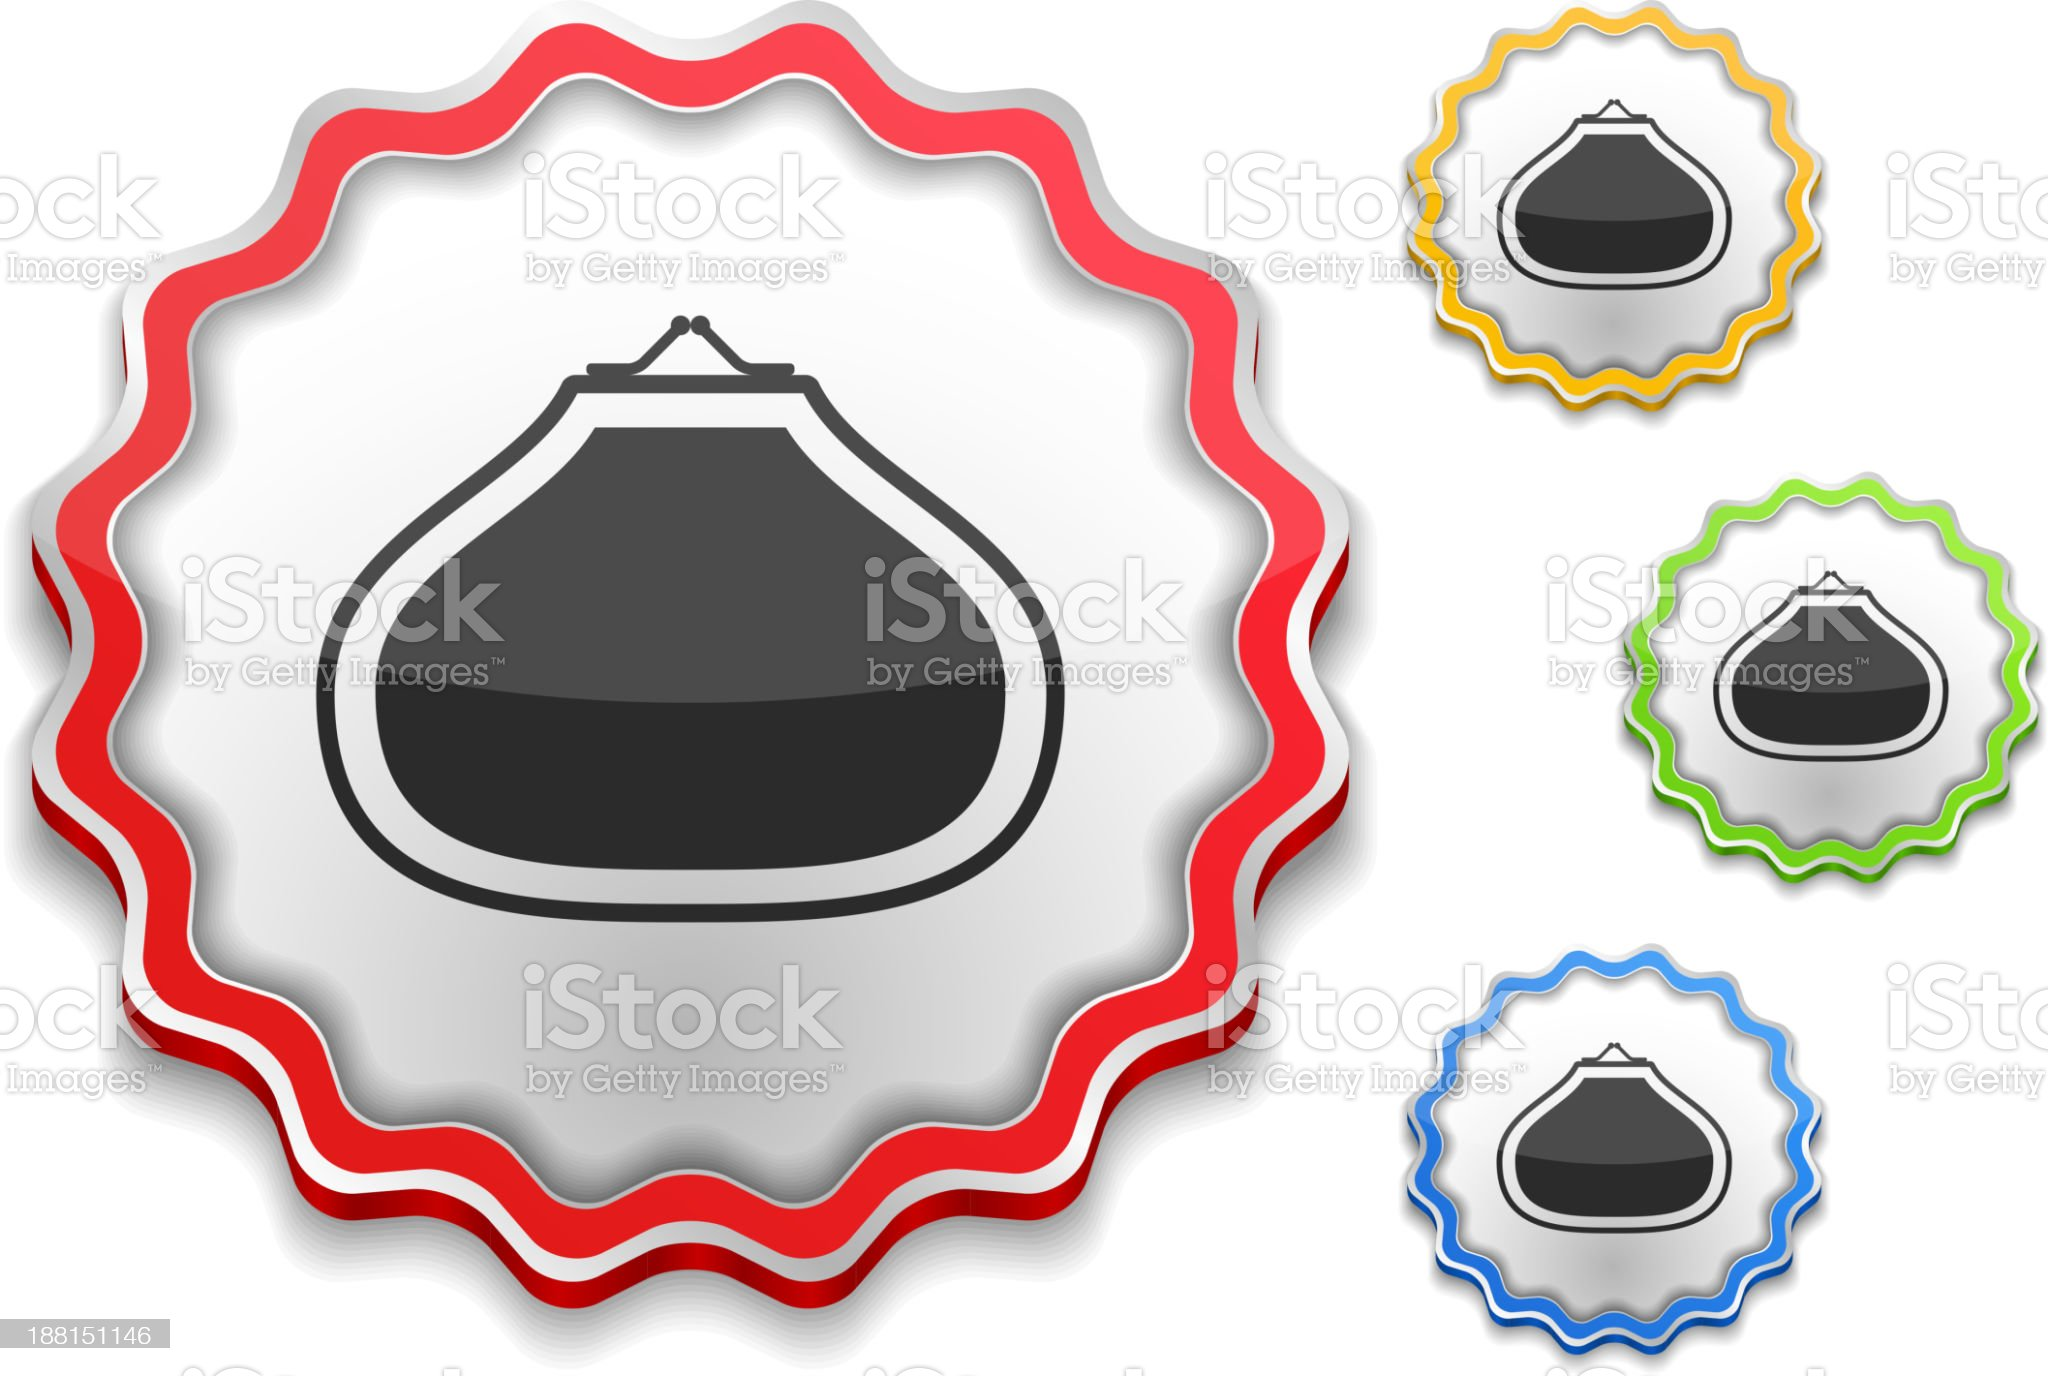 Purse Icon royalty-free stock vector art